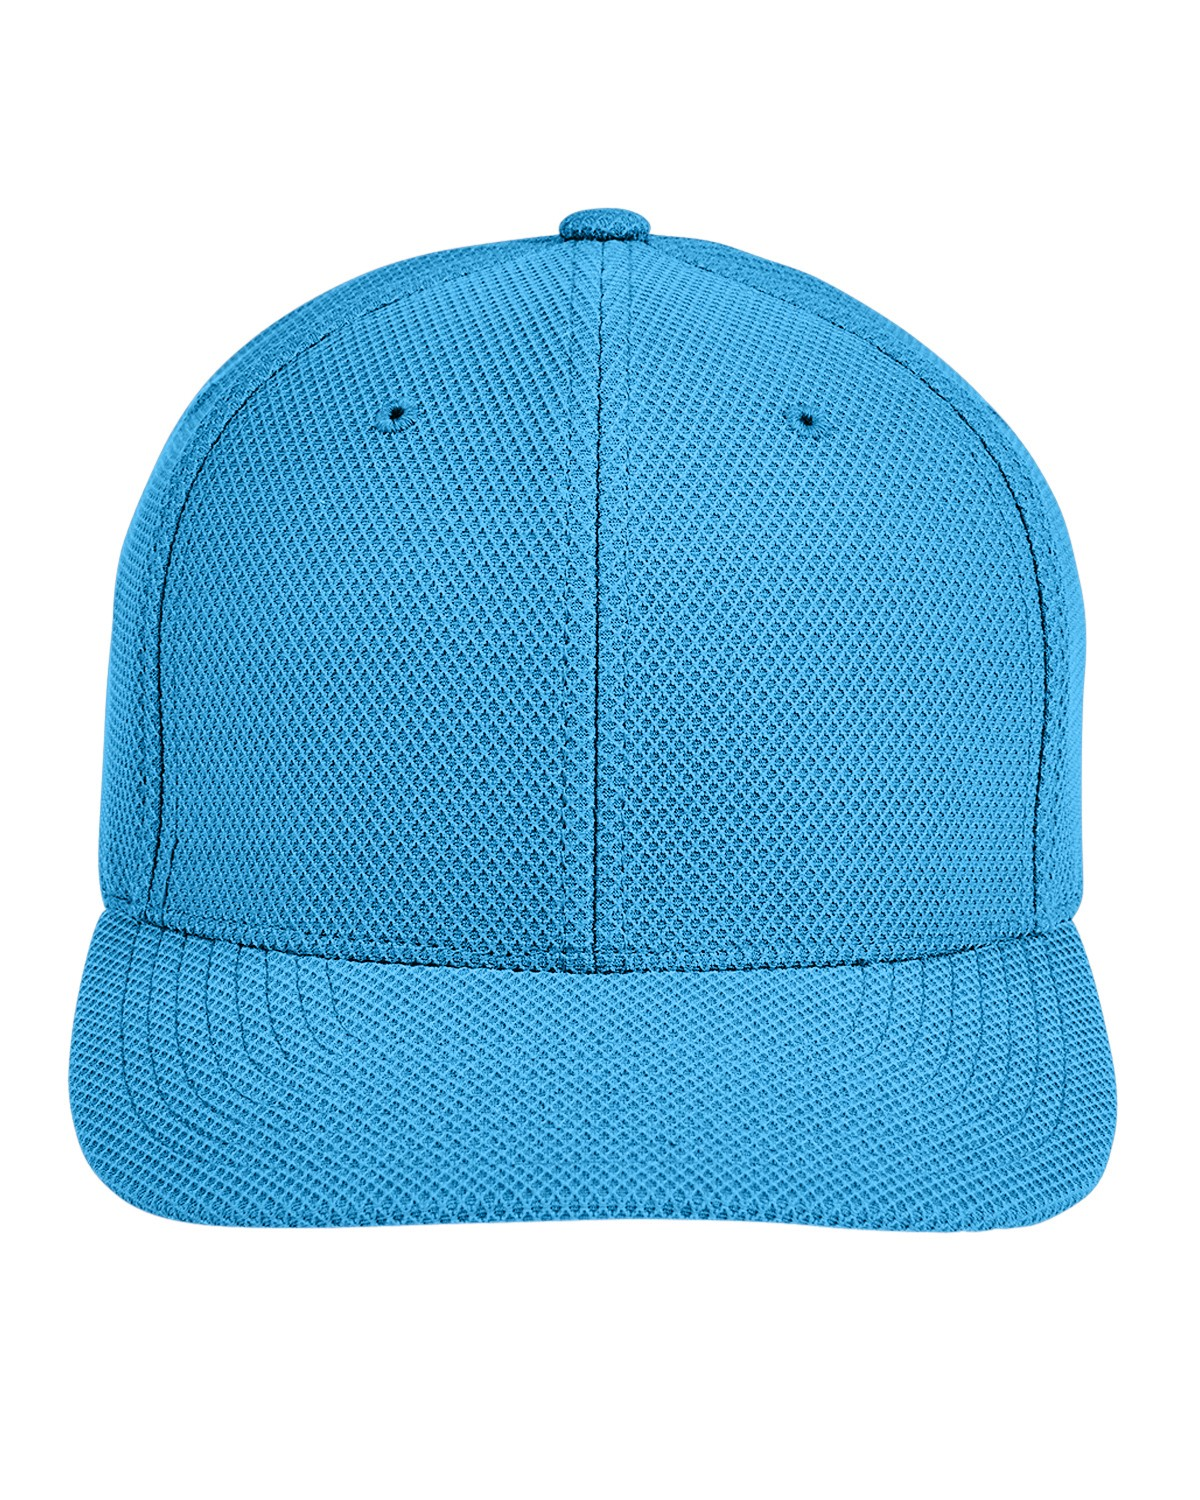 DG801 Devon & Jones OCEAN BLUE